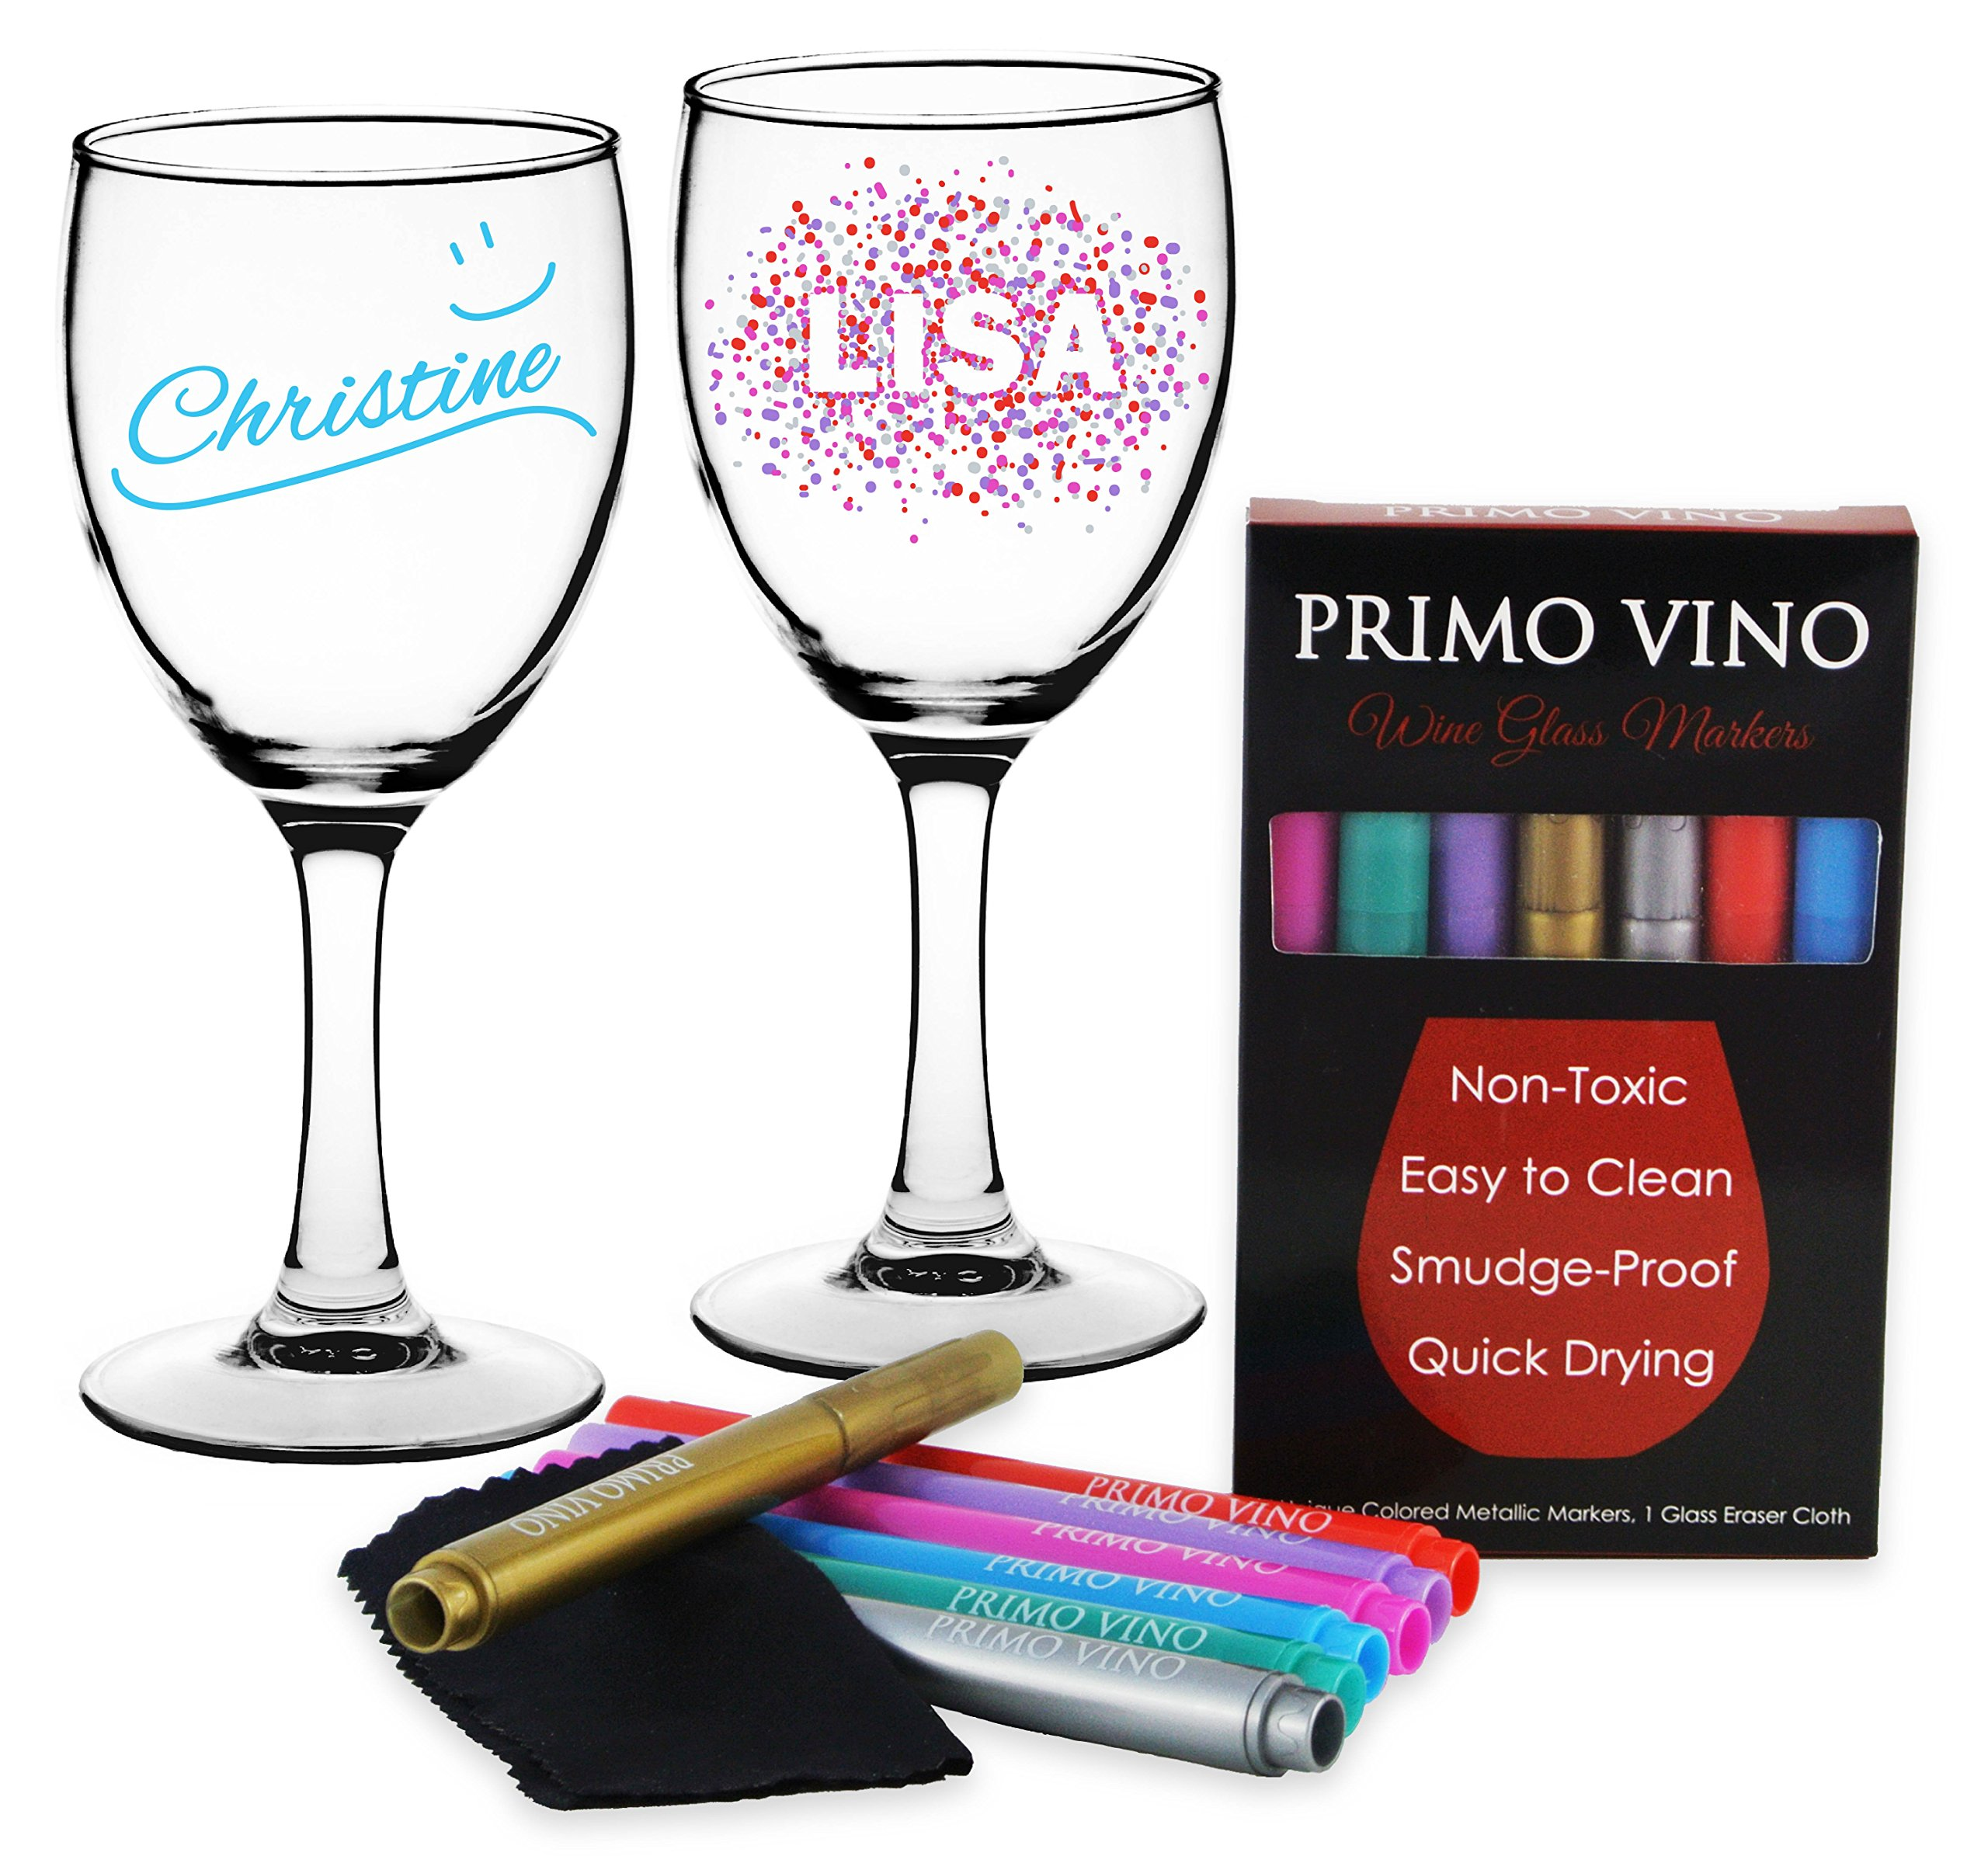 (NEW) METALLIC WINE GLASS MARKERS, Set of 7 Pens with Eraser Cloth. Write on Glassware, Bottles and Plates. by Primo Vino